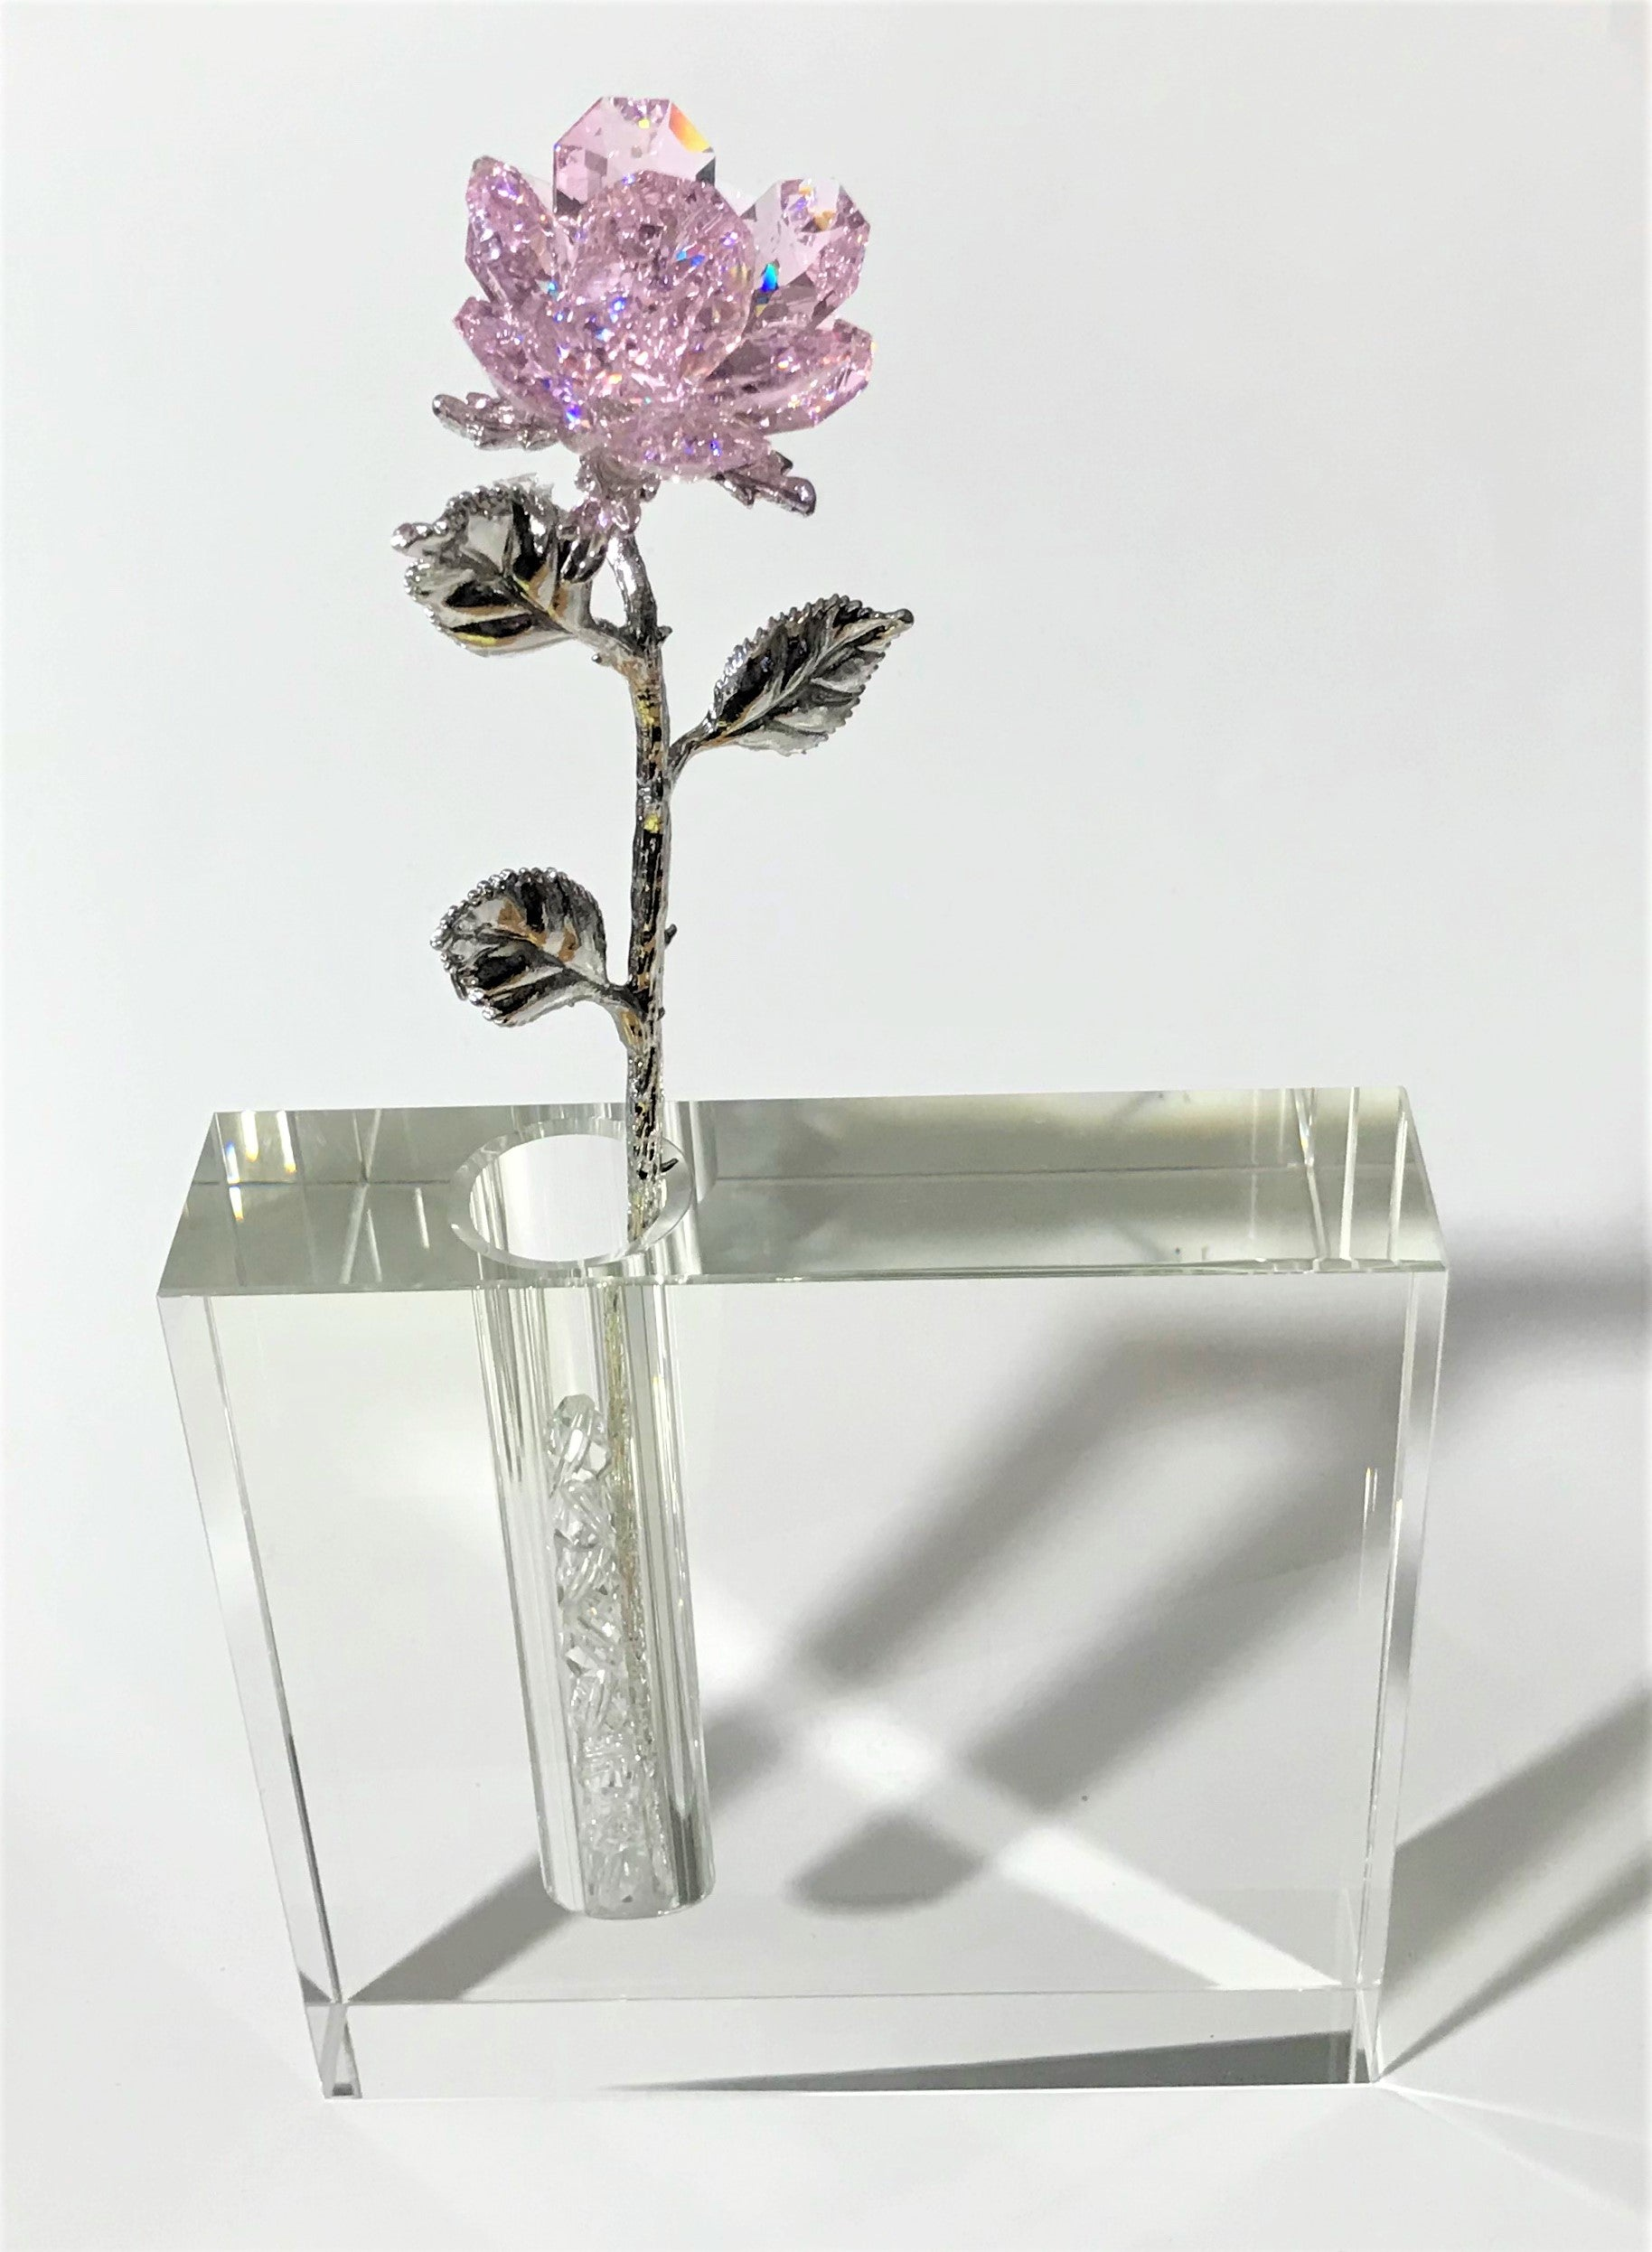 Pink Crystal Rose In 5 Inch Square Crystal Vase - Pink Crystal Flower In Vase